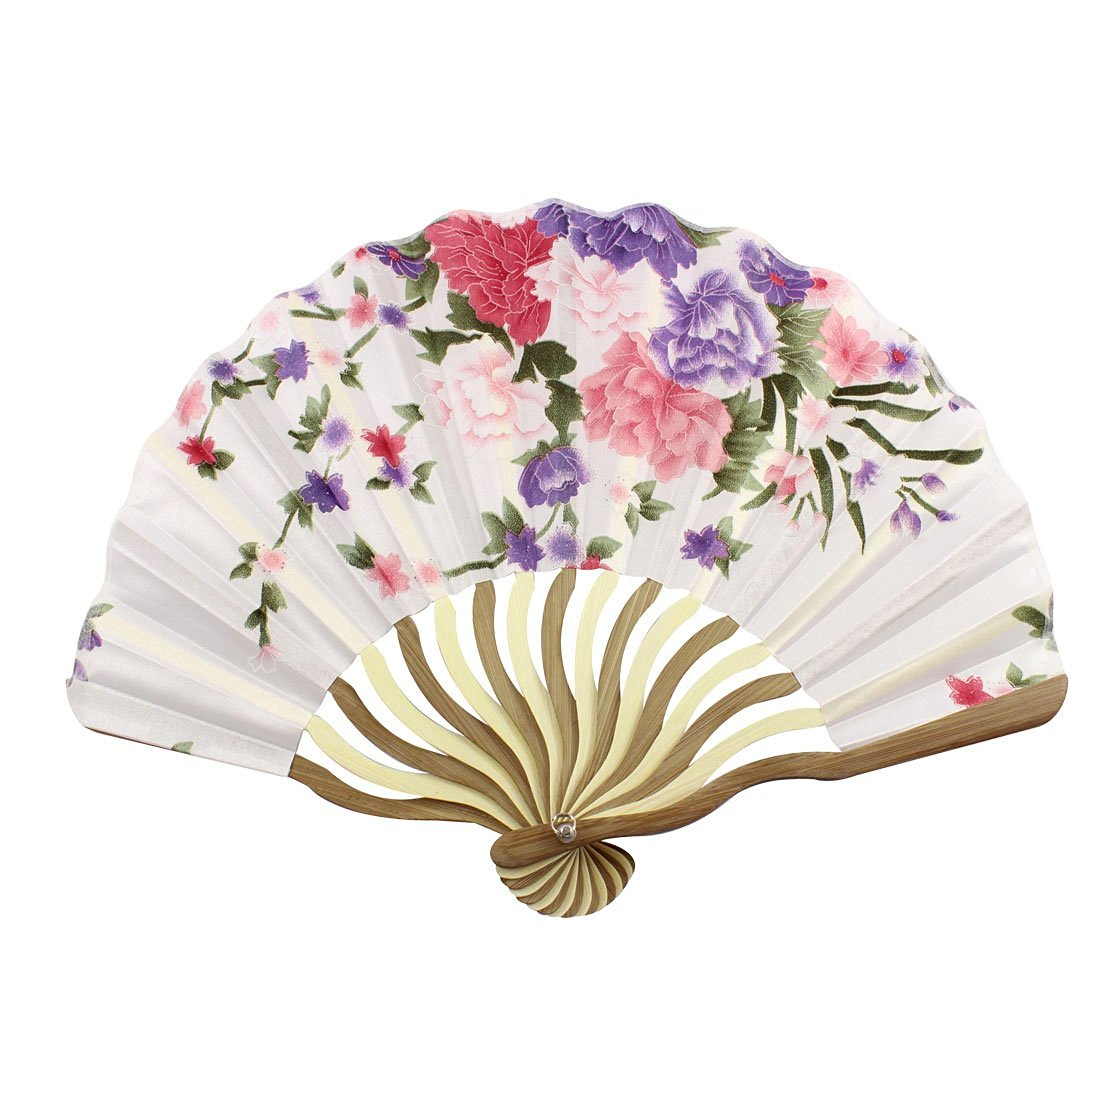 uxcell Bamboo Flower Printed Japanese Style Foldable Hand Held Fan Gift Decor